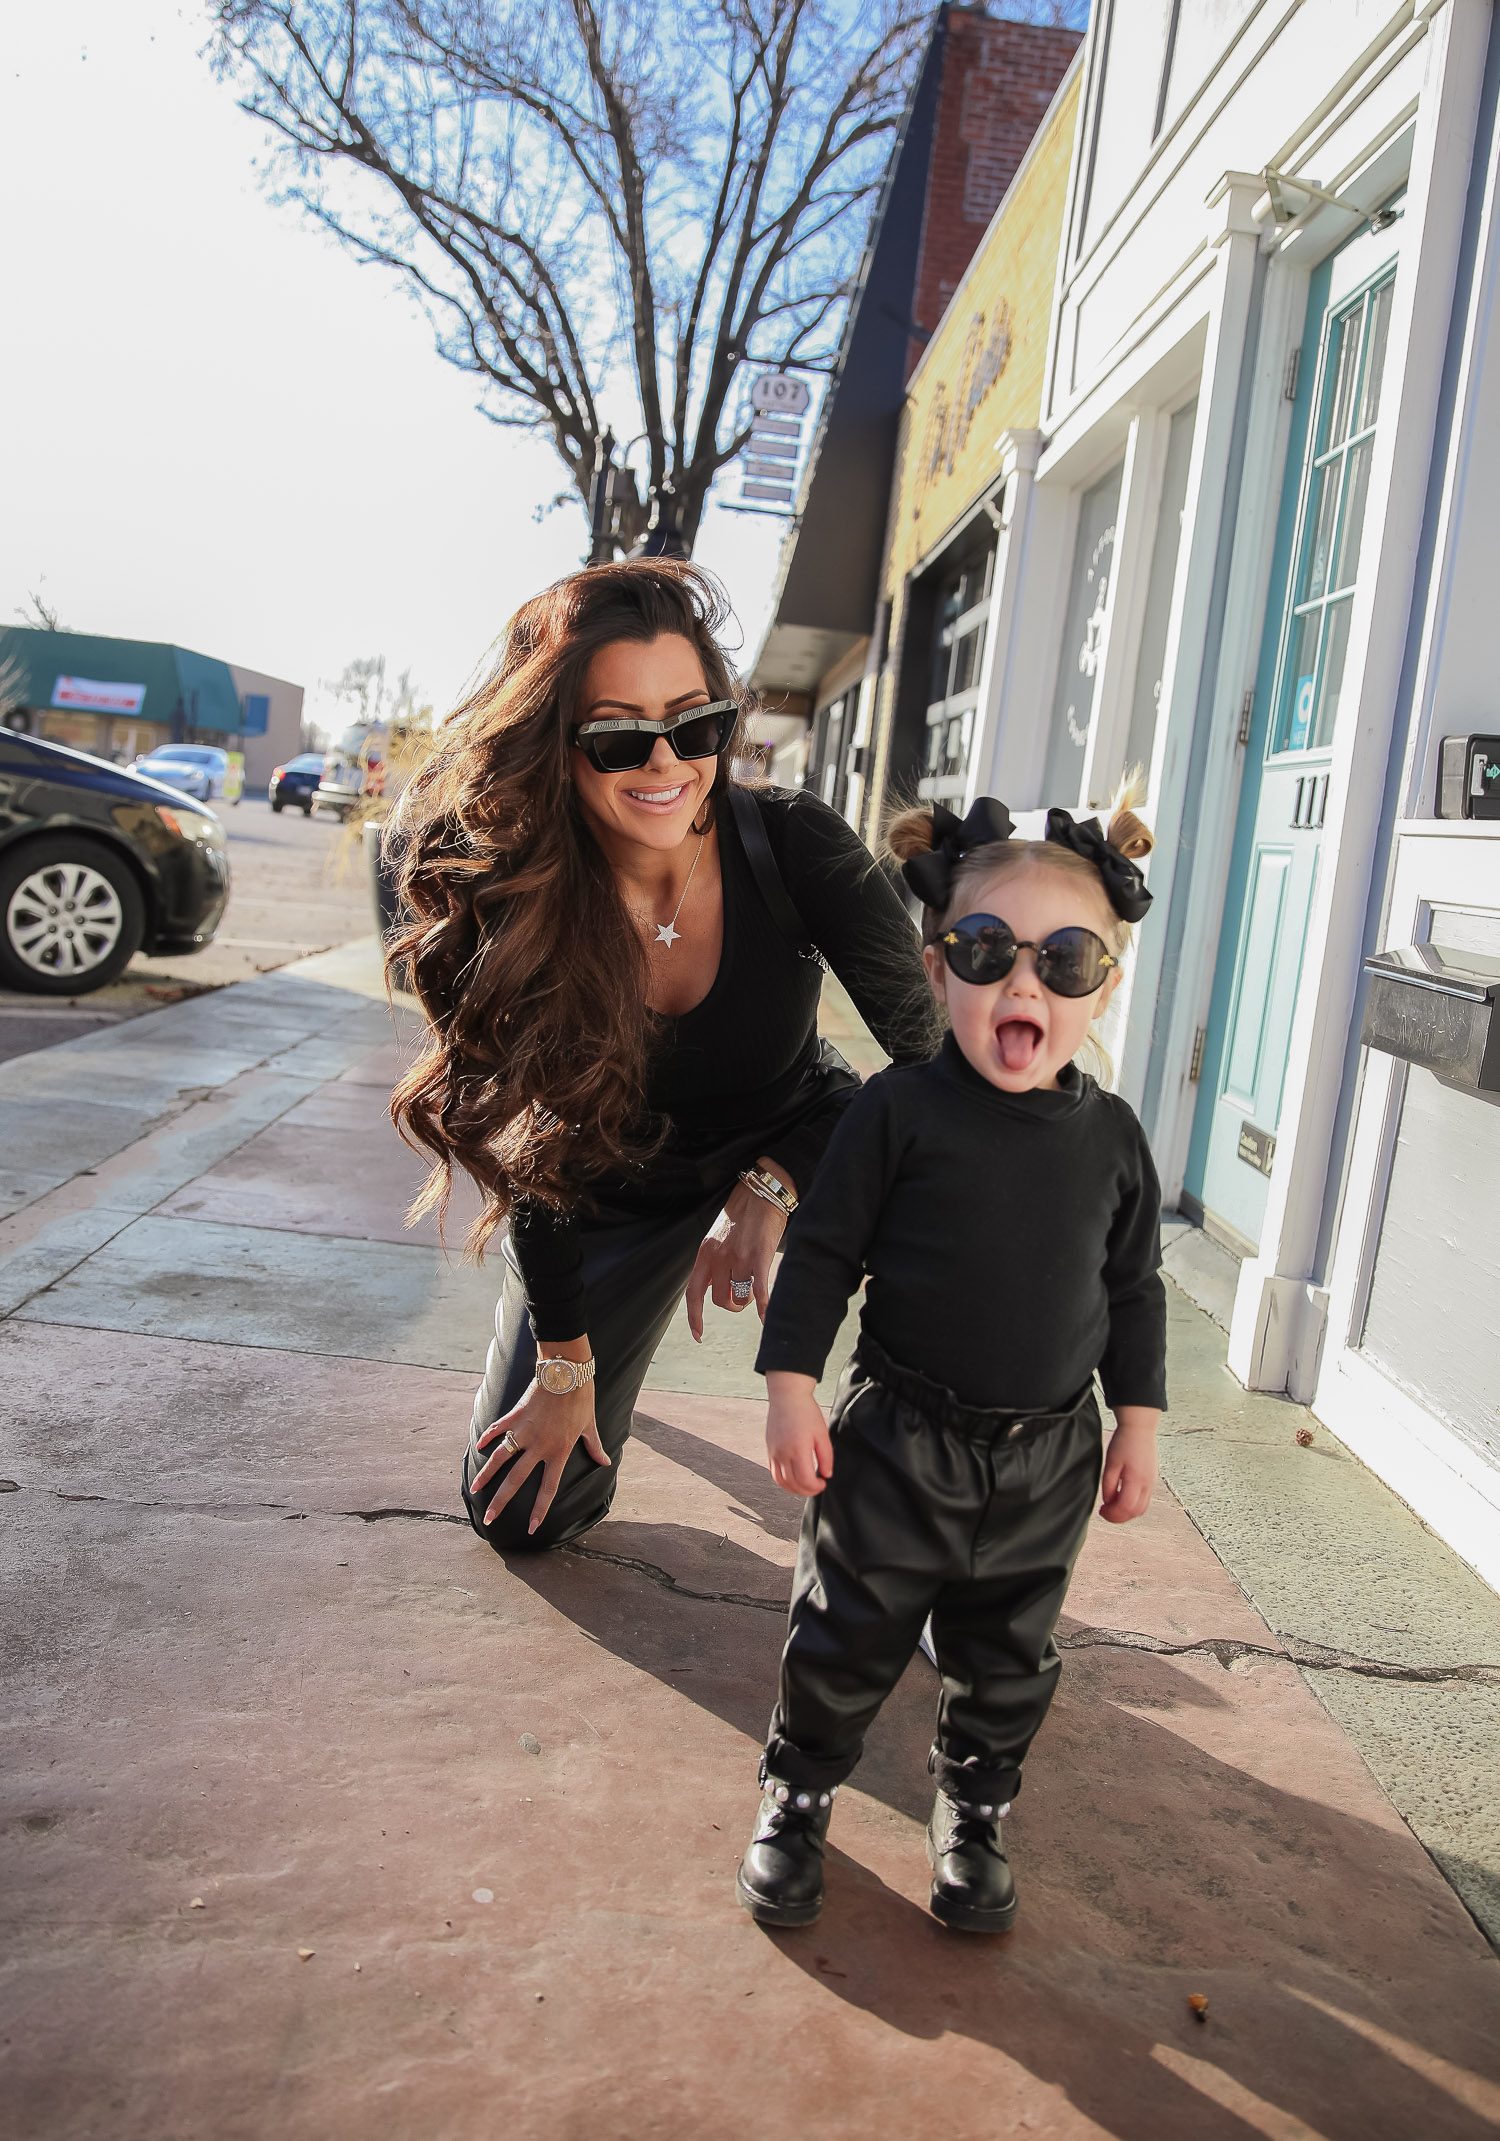 matching mommy daughter fashion outfits Pinterest, Emily Gemma, Nordstrom BP faux leather pants, loewe sunglasses, Alexander mcqueen sneakers gold white outfit pinterest |Mommy and Daughter by popular US fashion blog, The Sweetest Thing: image of a woman and her daughter walking together outside and wearing a pair of BP faux leather pants, Good American top, loewe sunglasses, Alexander mcqueen sneakers, Monica Vinader ring, Nadri bracelet, Nadri earrings, and Rolex watch.